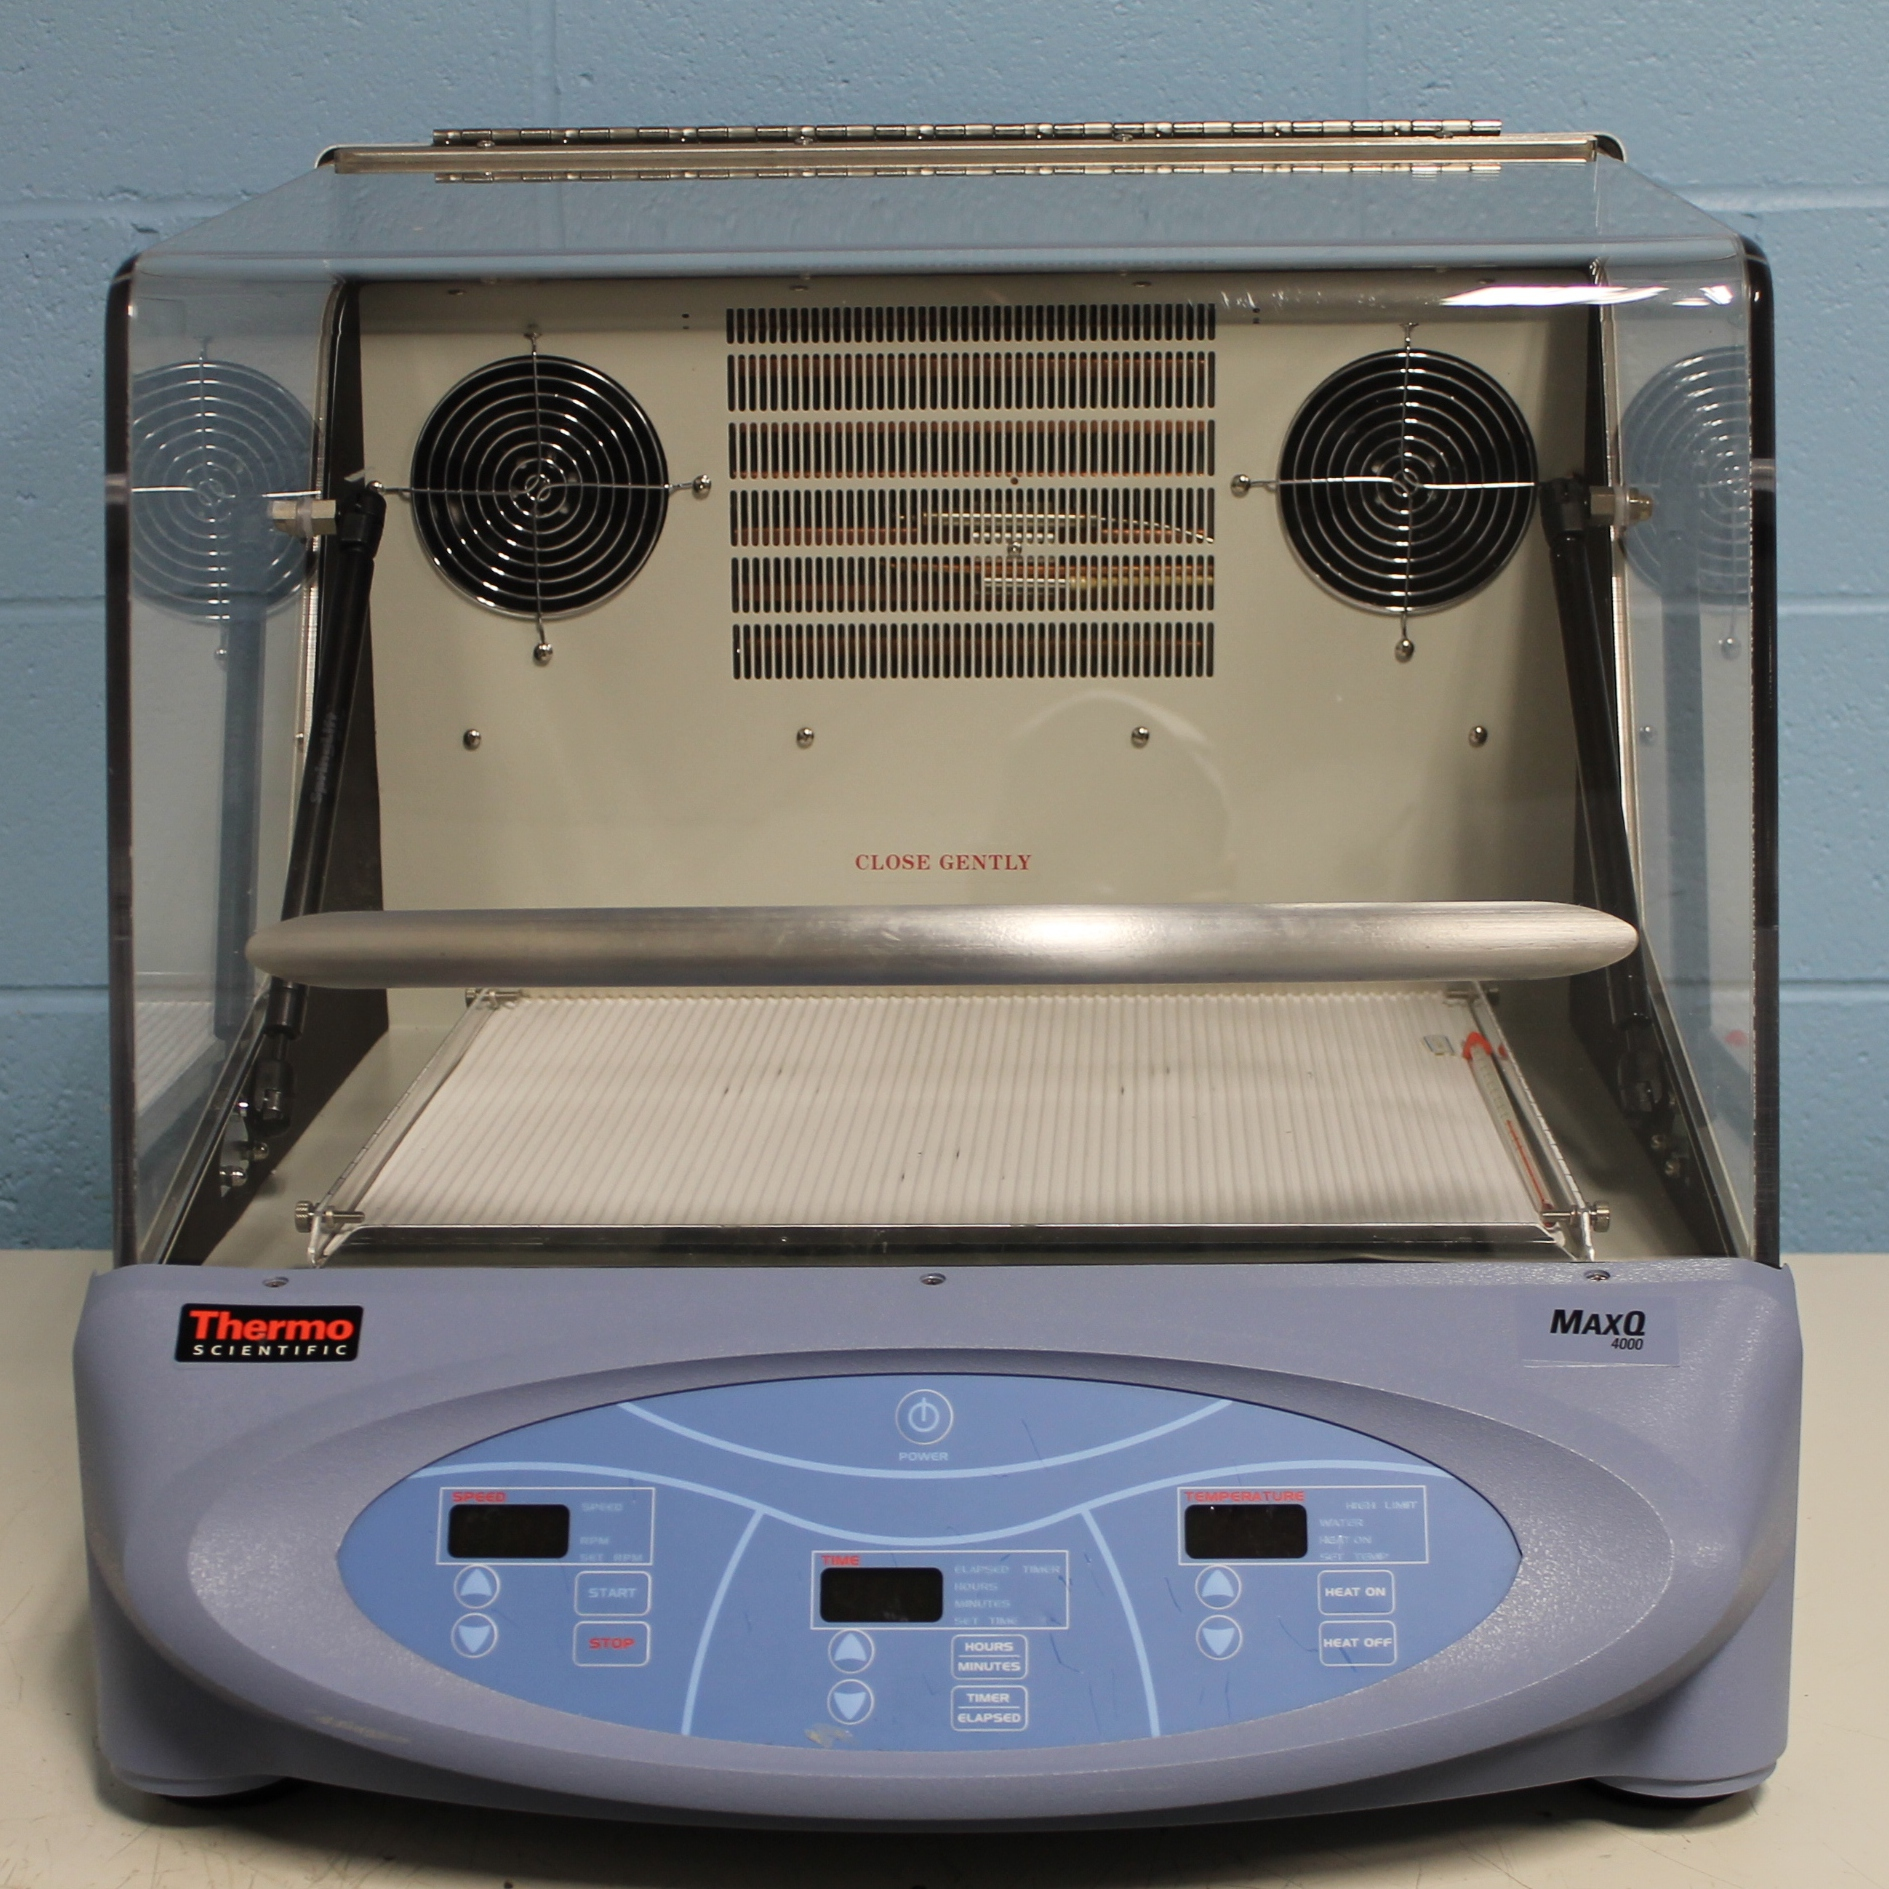 Thermo Scientific MaxQ 4000 Benchtop Refrigerated Digital Shaker Image